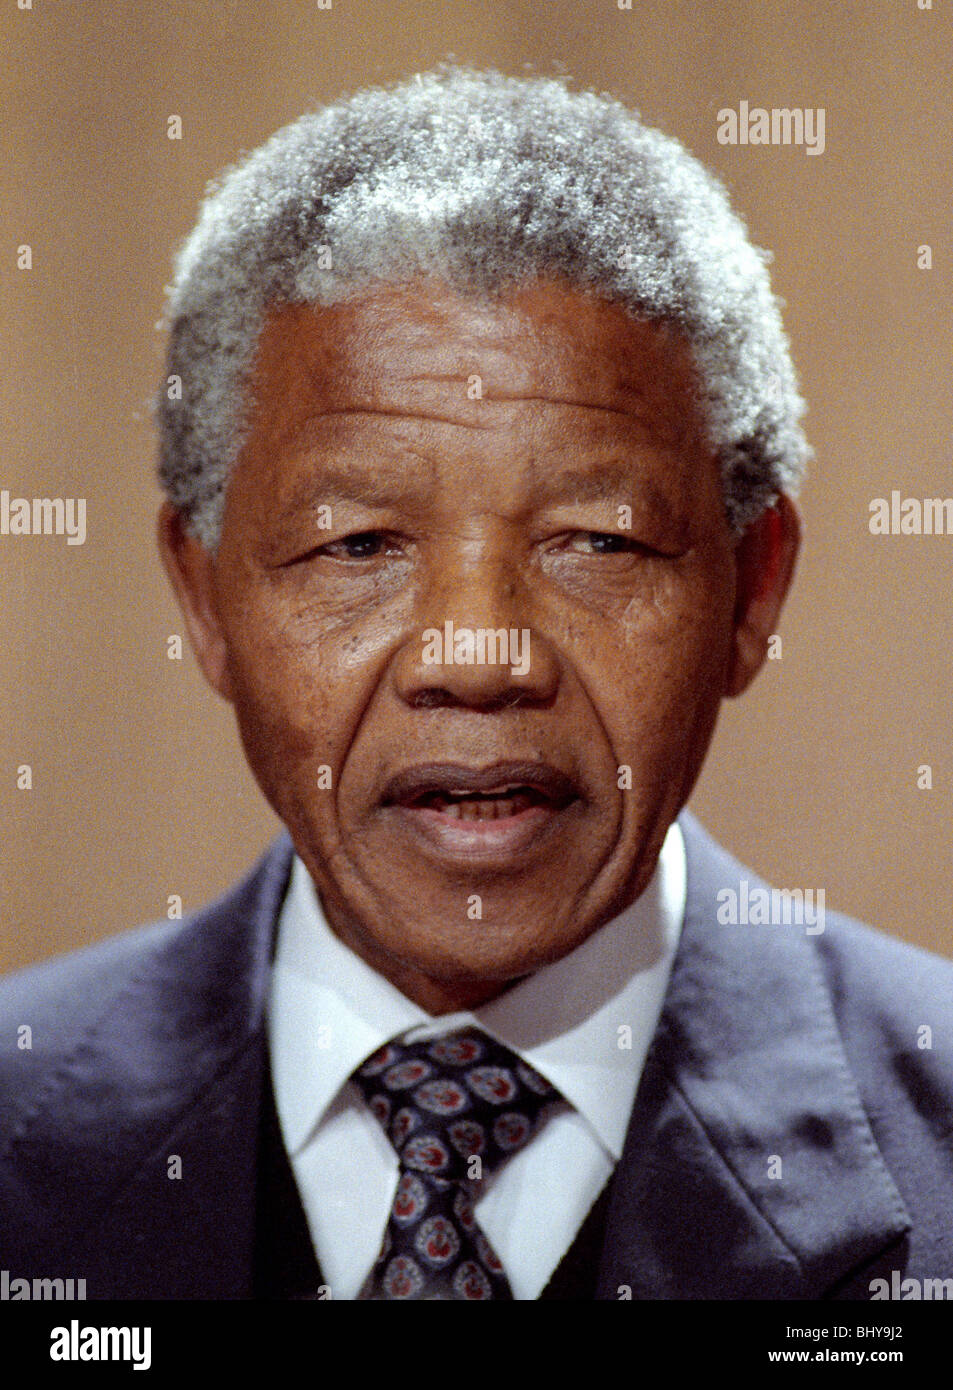 NELSON MANDELA VICE CHAIRMAN OF THE A.N.C. 04 July 1990 LONDON ENGLAND - Stock Image